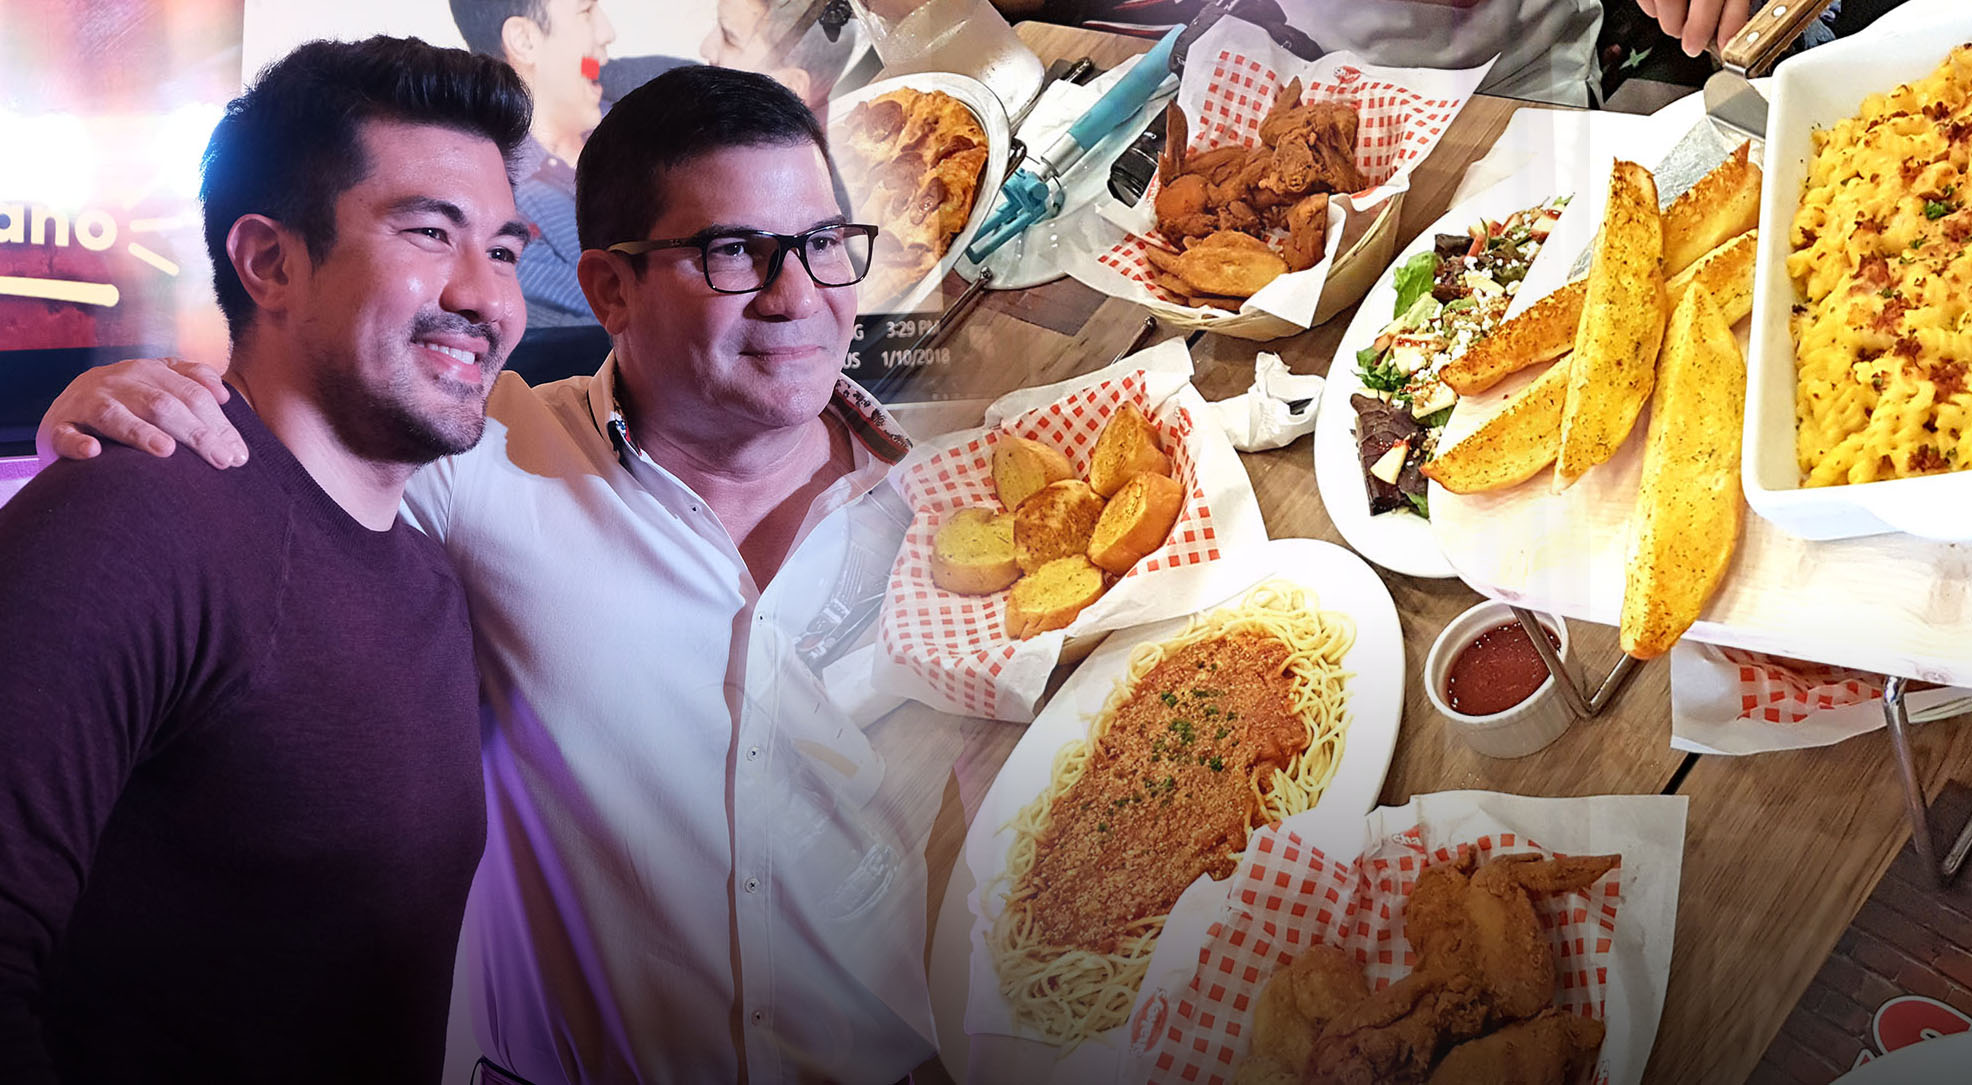 It's a #Lucky2018 as Edu and Luis Introduces Shakey's Hottest 2018 Meal Deal